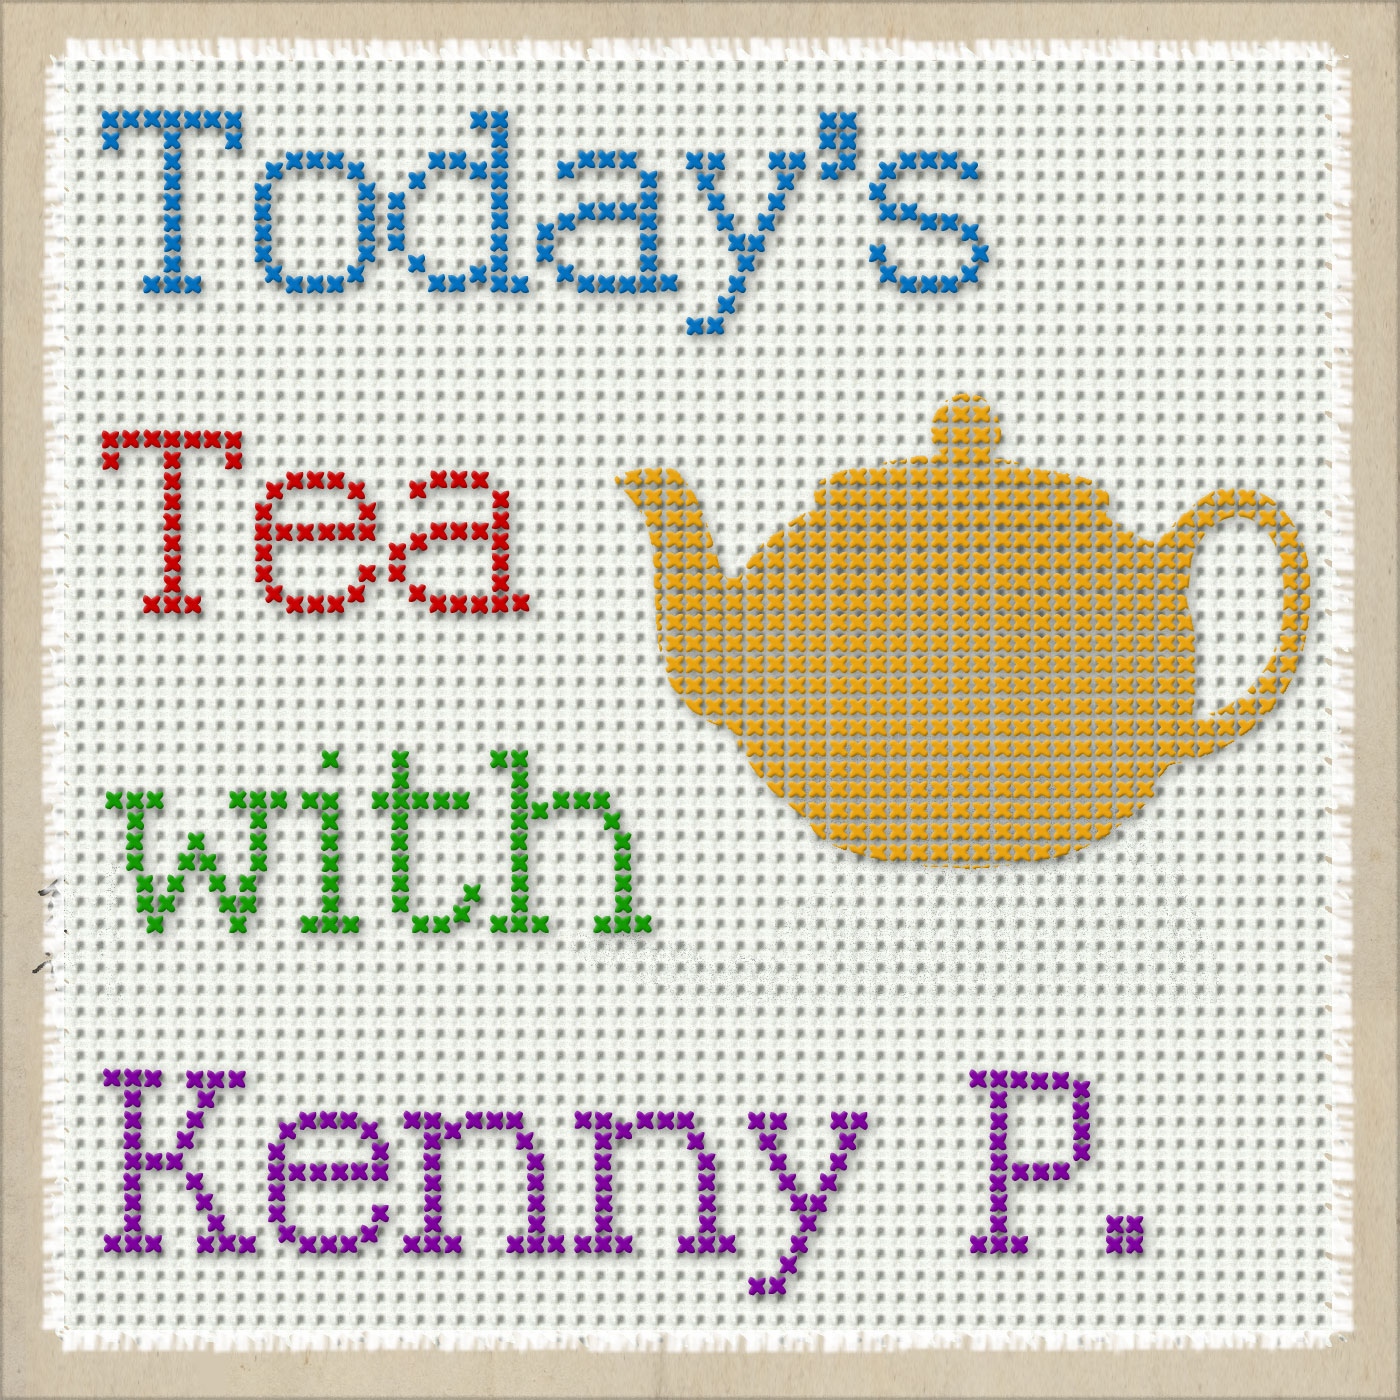 Today's Tea with Kenny P.